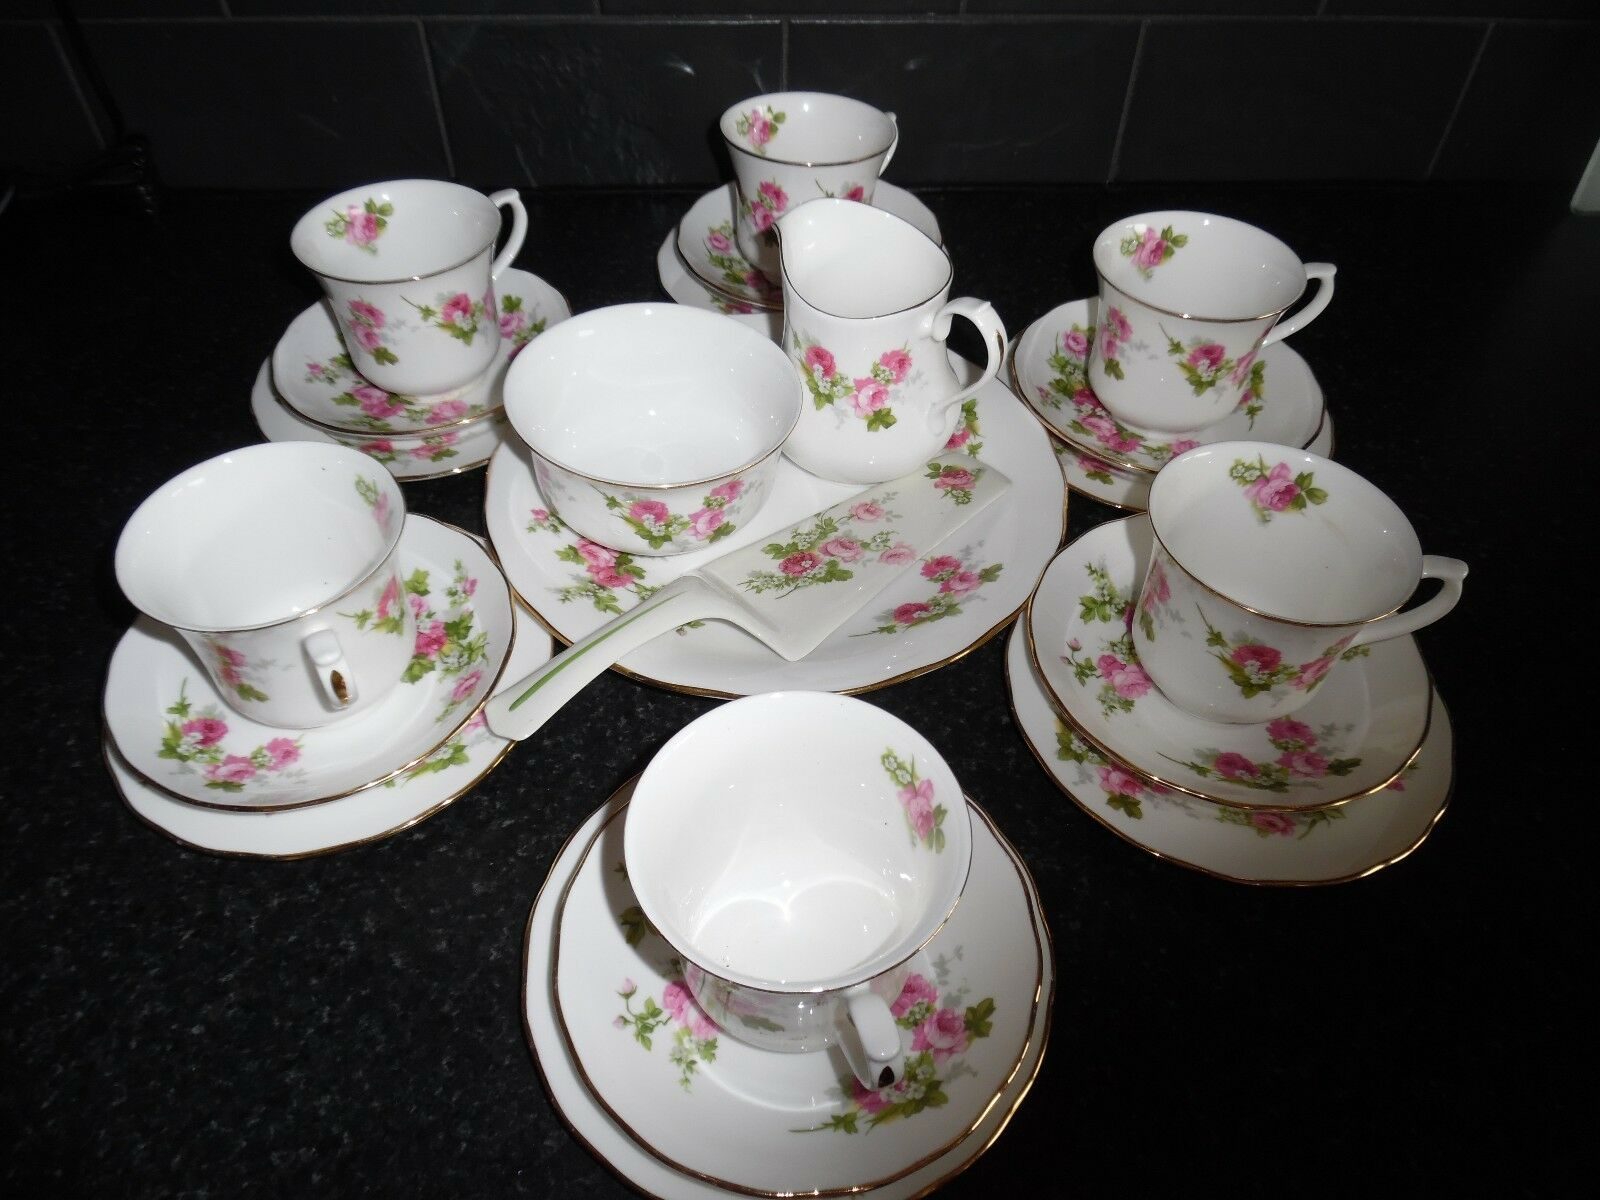 royal osborne pink rosebud bone china tea service 22 piece picclick uk. Black Bedroom Furniture Sets. Home Design Ideas